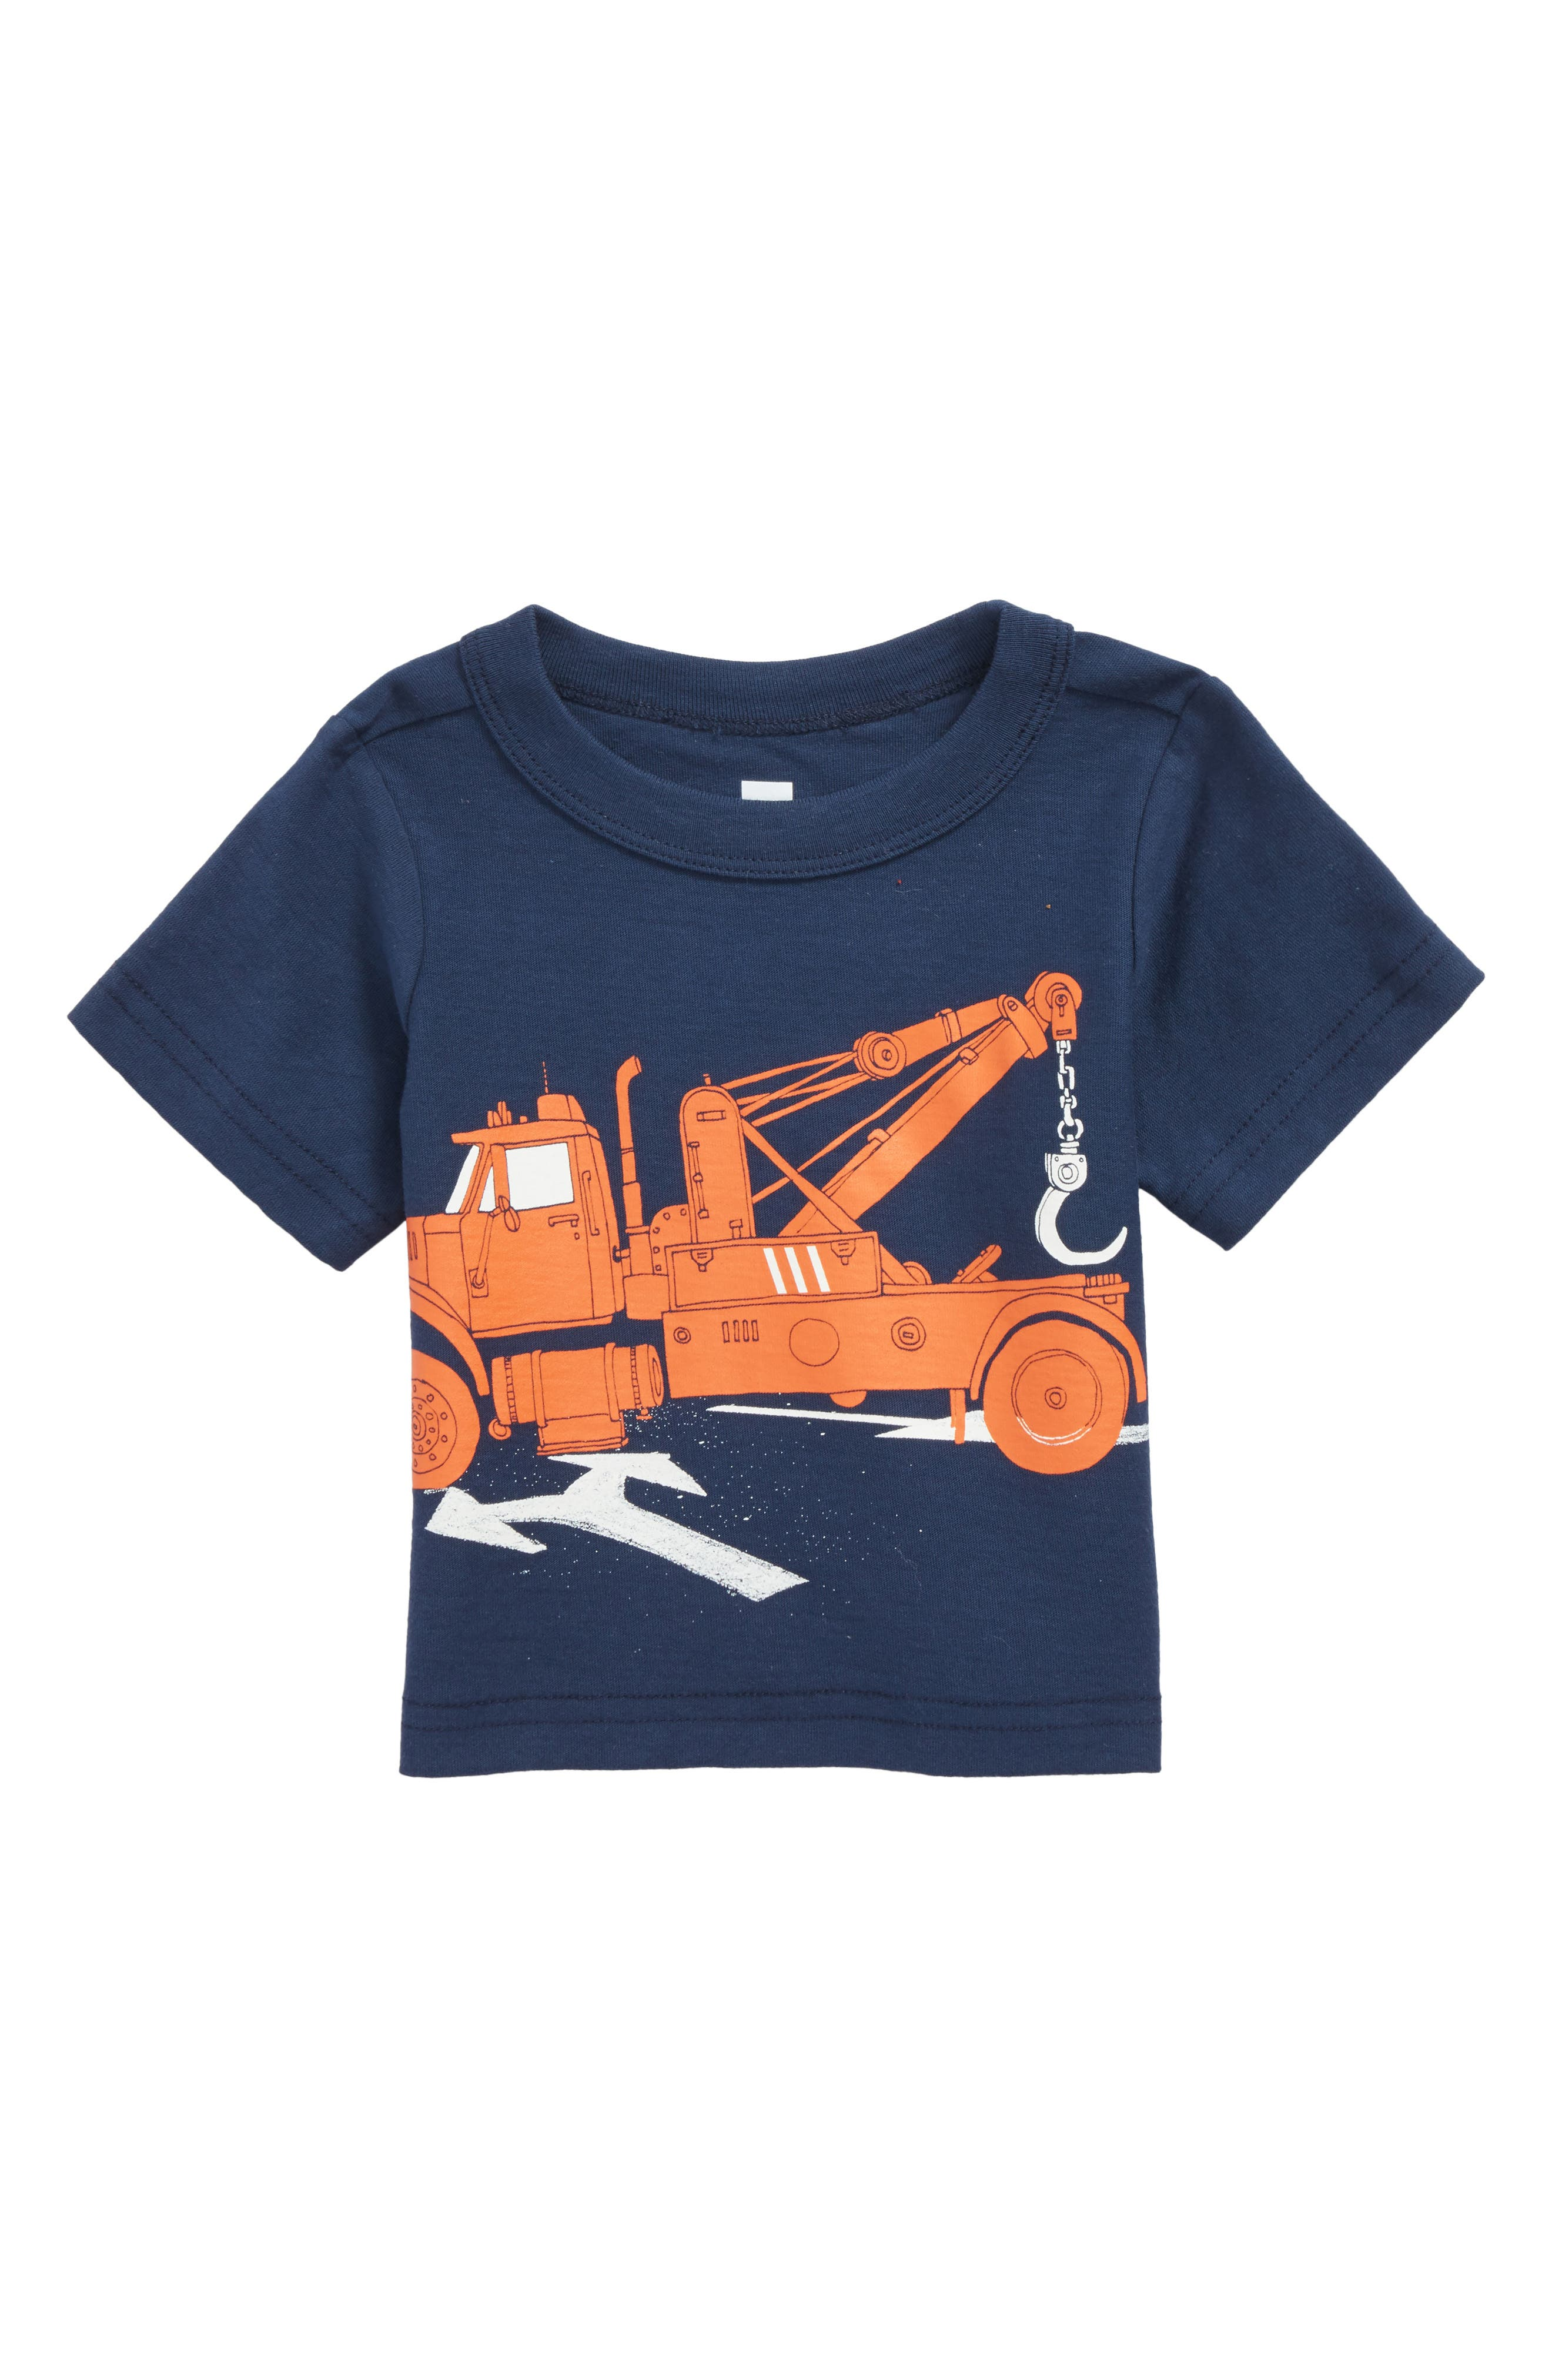 Tea Collection Tow Truck Graphic T-Shirt (Baby Boys)